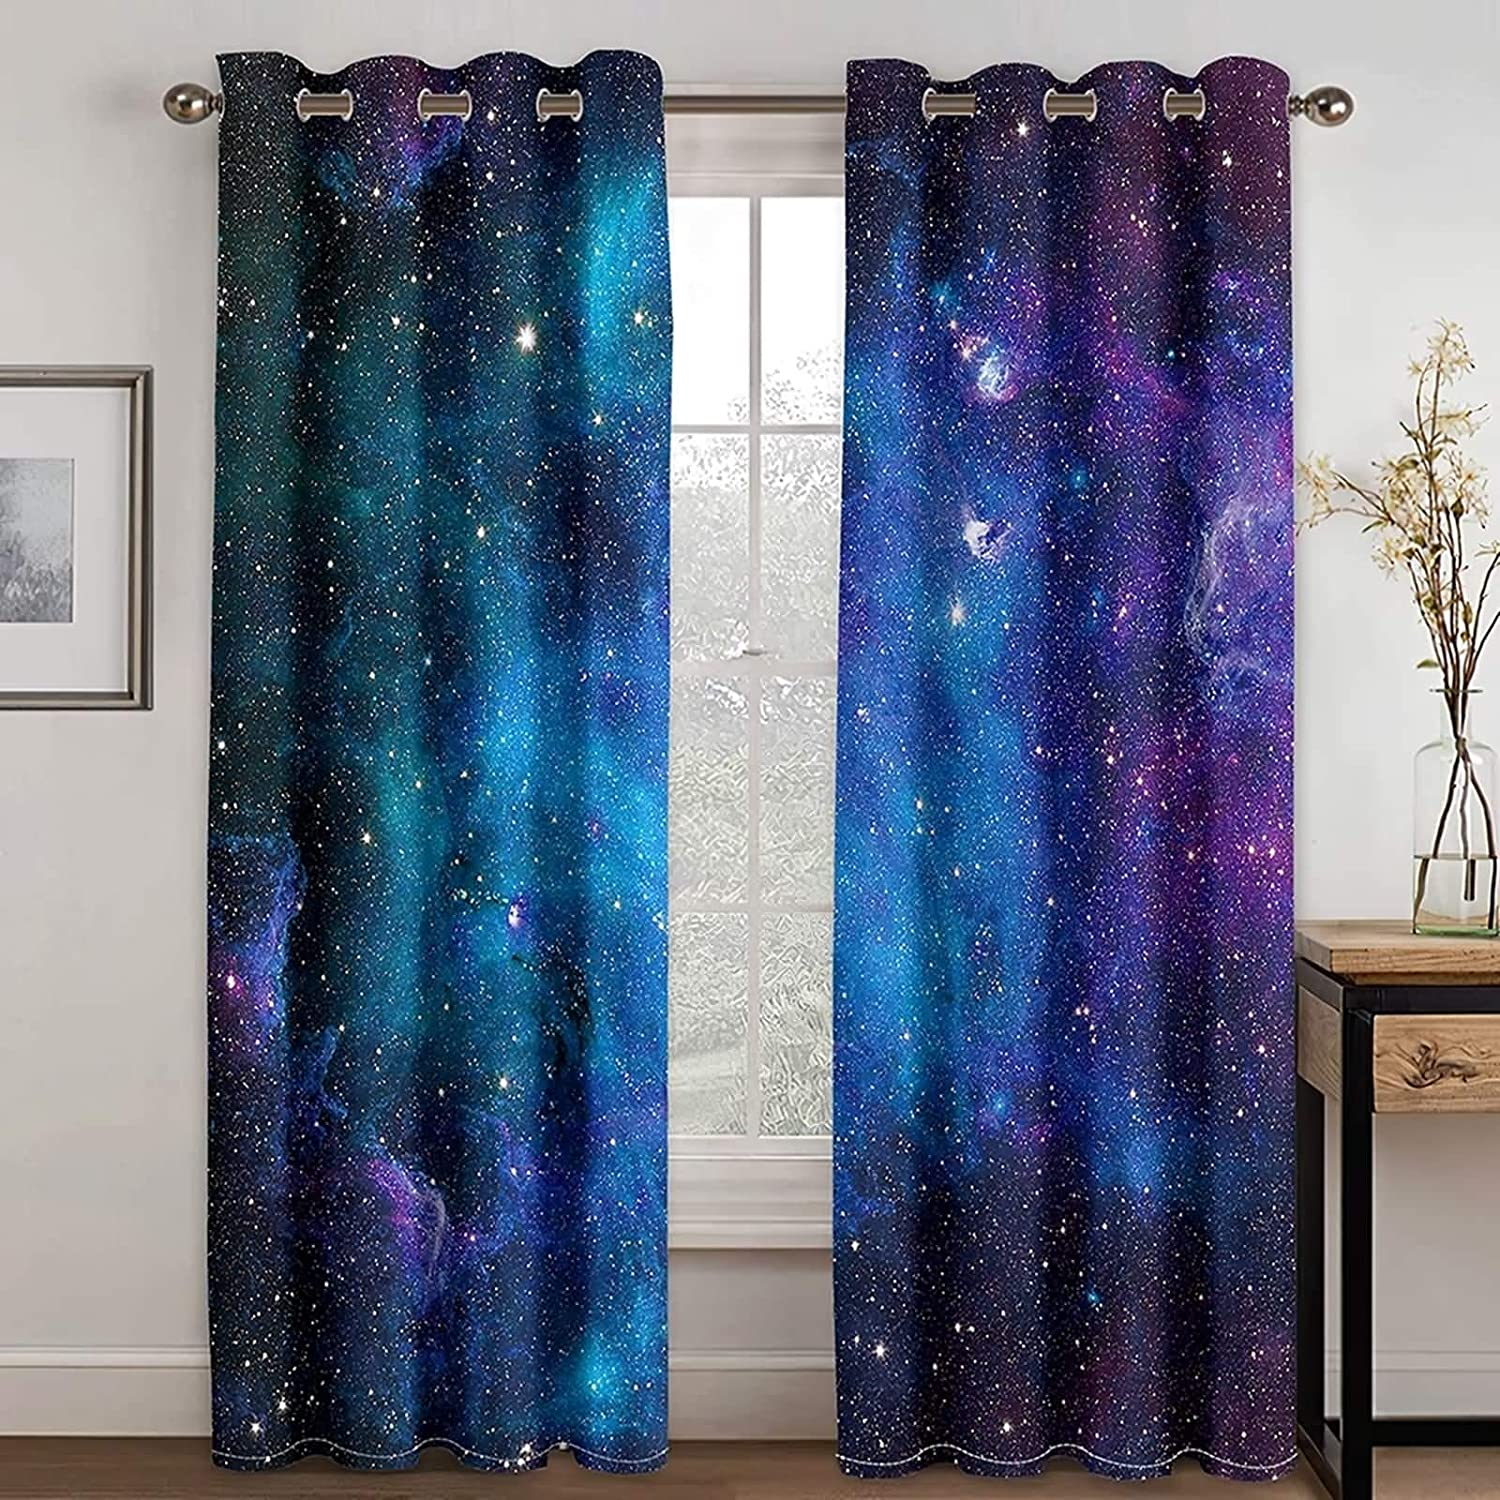 Daesar Bedroom Blackout Curtains 2 Drapes All items in the store Sets Panel f Now on sale